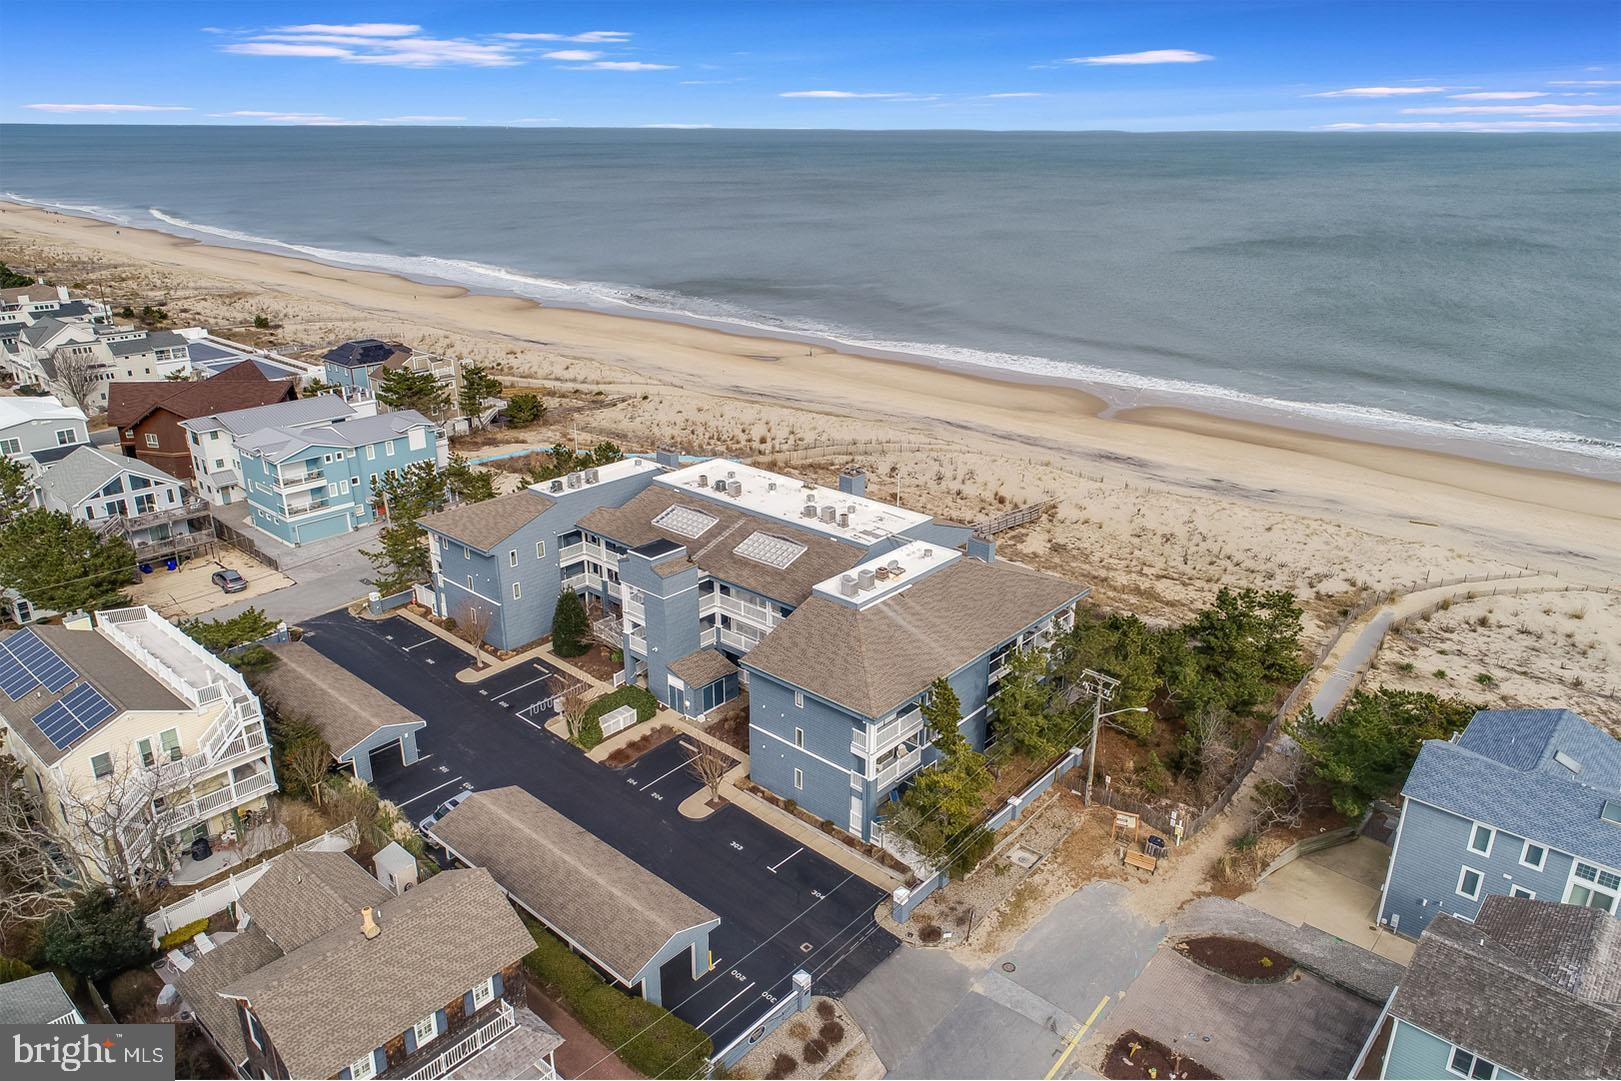 Welcome to Unit 204 in Wilson Dunes, a rare oceanfront opportunity in the pristinely maintained and highly desired boutique style 12-unit luxury condo building. From the moment you enter, you will be captivated by the spectacular ocean views. This 2nd level unit is in the southeast corner of the building and offers an abundance of natural light from its southern exposure and remarkable sunrises. This property features low maintenance living at its absolute finest. Recent complex updates include new exterior siding, new deck surfaces for all 2nd and 3rd floor units, new beach walk offering private access to the beach, and updated walkways and composite decking. This condo has never been rented and undergone numerous updates and renovations in recent years including new flooring throughout, new paint, updated hall bathroom, new Pella door units, hurricane shutters and recessed lighting. The property features 3 spacious bedrooms, 2.5 baths, private laundry, beautifully appointed kitchen with space for both indoor and outdoor dining and a large breakfast bar that comfortably seats at least 5. Floor to ceiling sliders encompass the entire living space casting the ocean and sand as your natural backdrop. Wilson Dunes offers the utmost convenient location just steps to the beach, bay and the amenities of Dewey Beach. In addition, only a quick walk, bike ride or trolley ride from downtown Rehoboth. Being sold mostly furnished, this opportunity is move in ready and awaiting your enjoyment for the 2021 summer season!